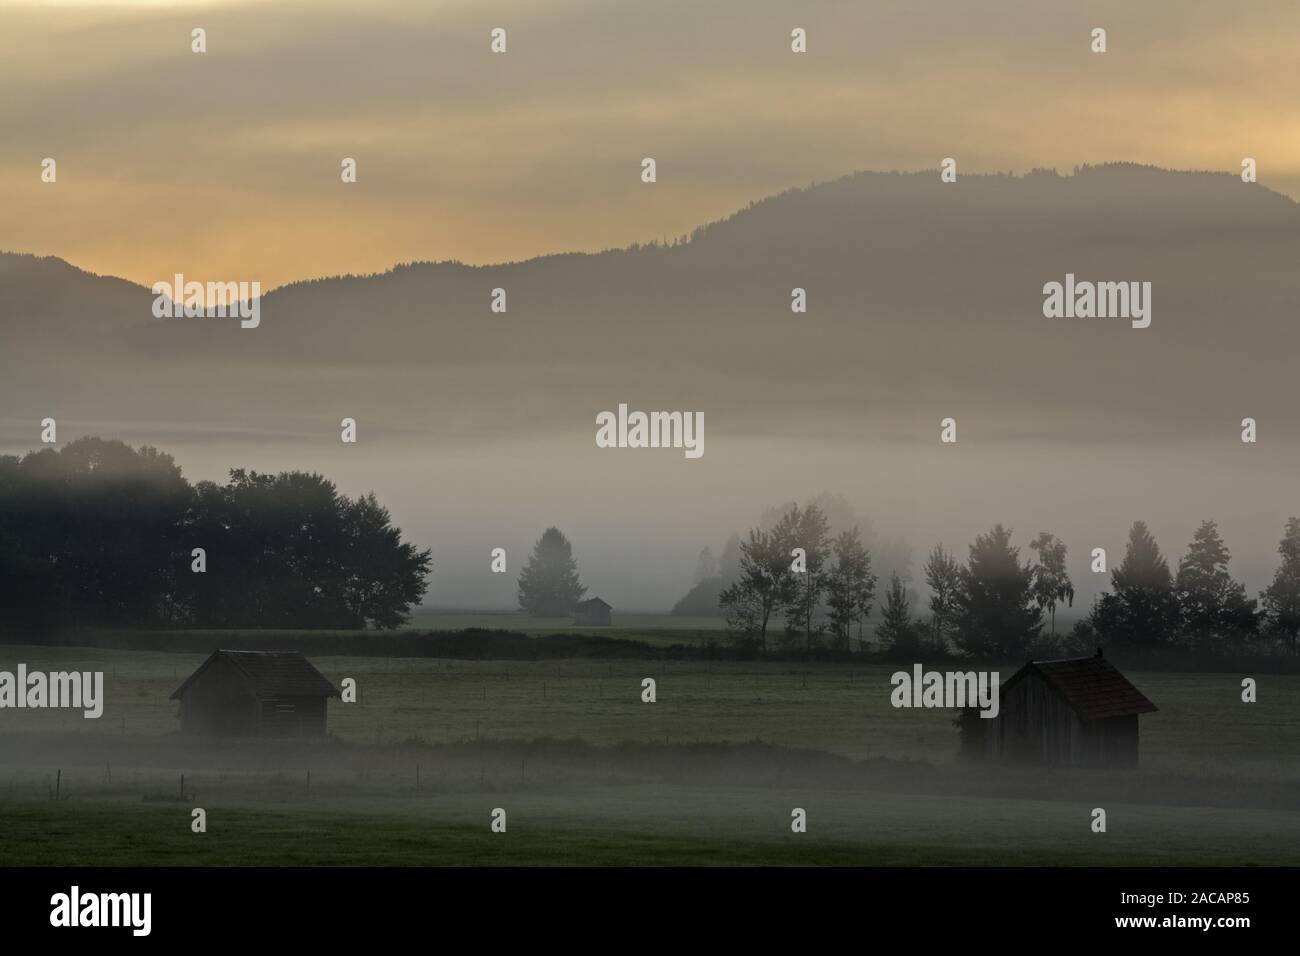 foggy scenery with huts in bavarian pre- alps, germany Stock Photo